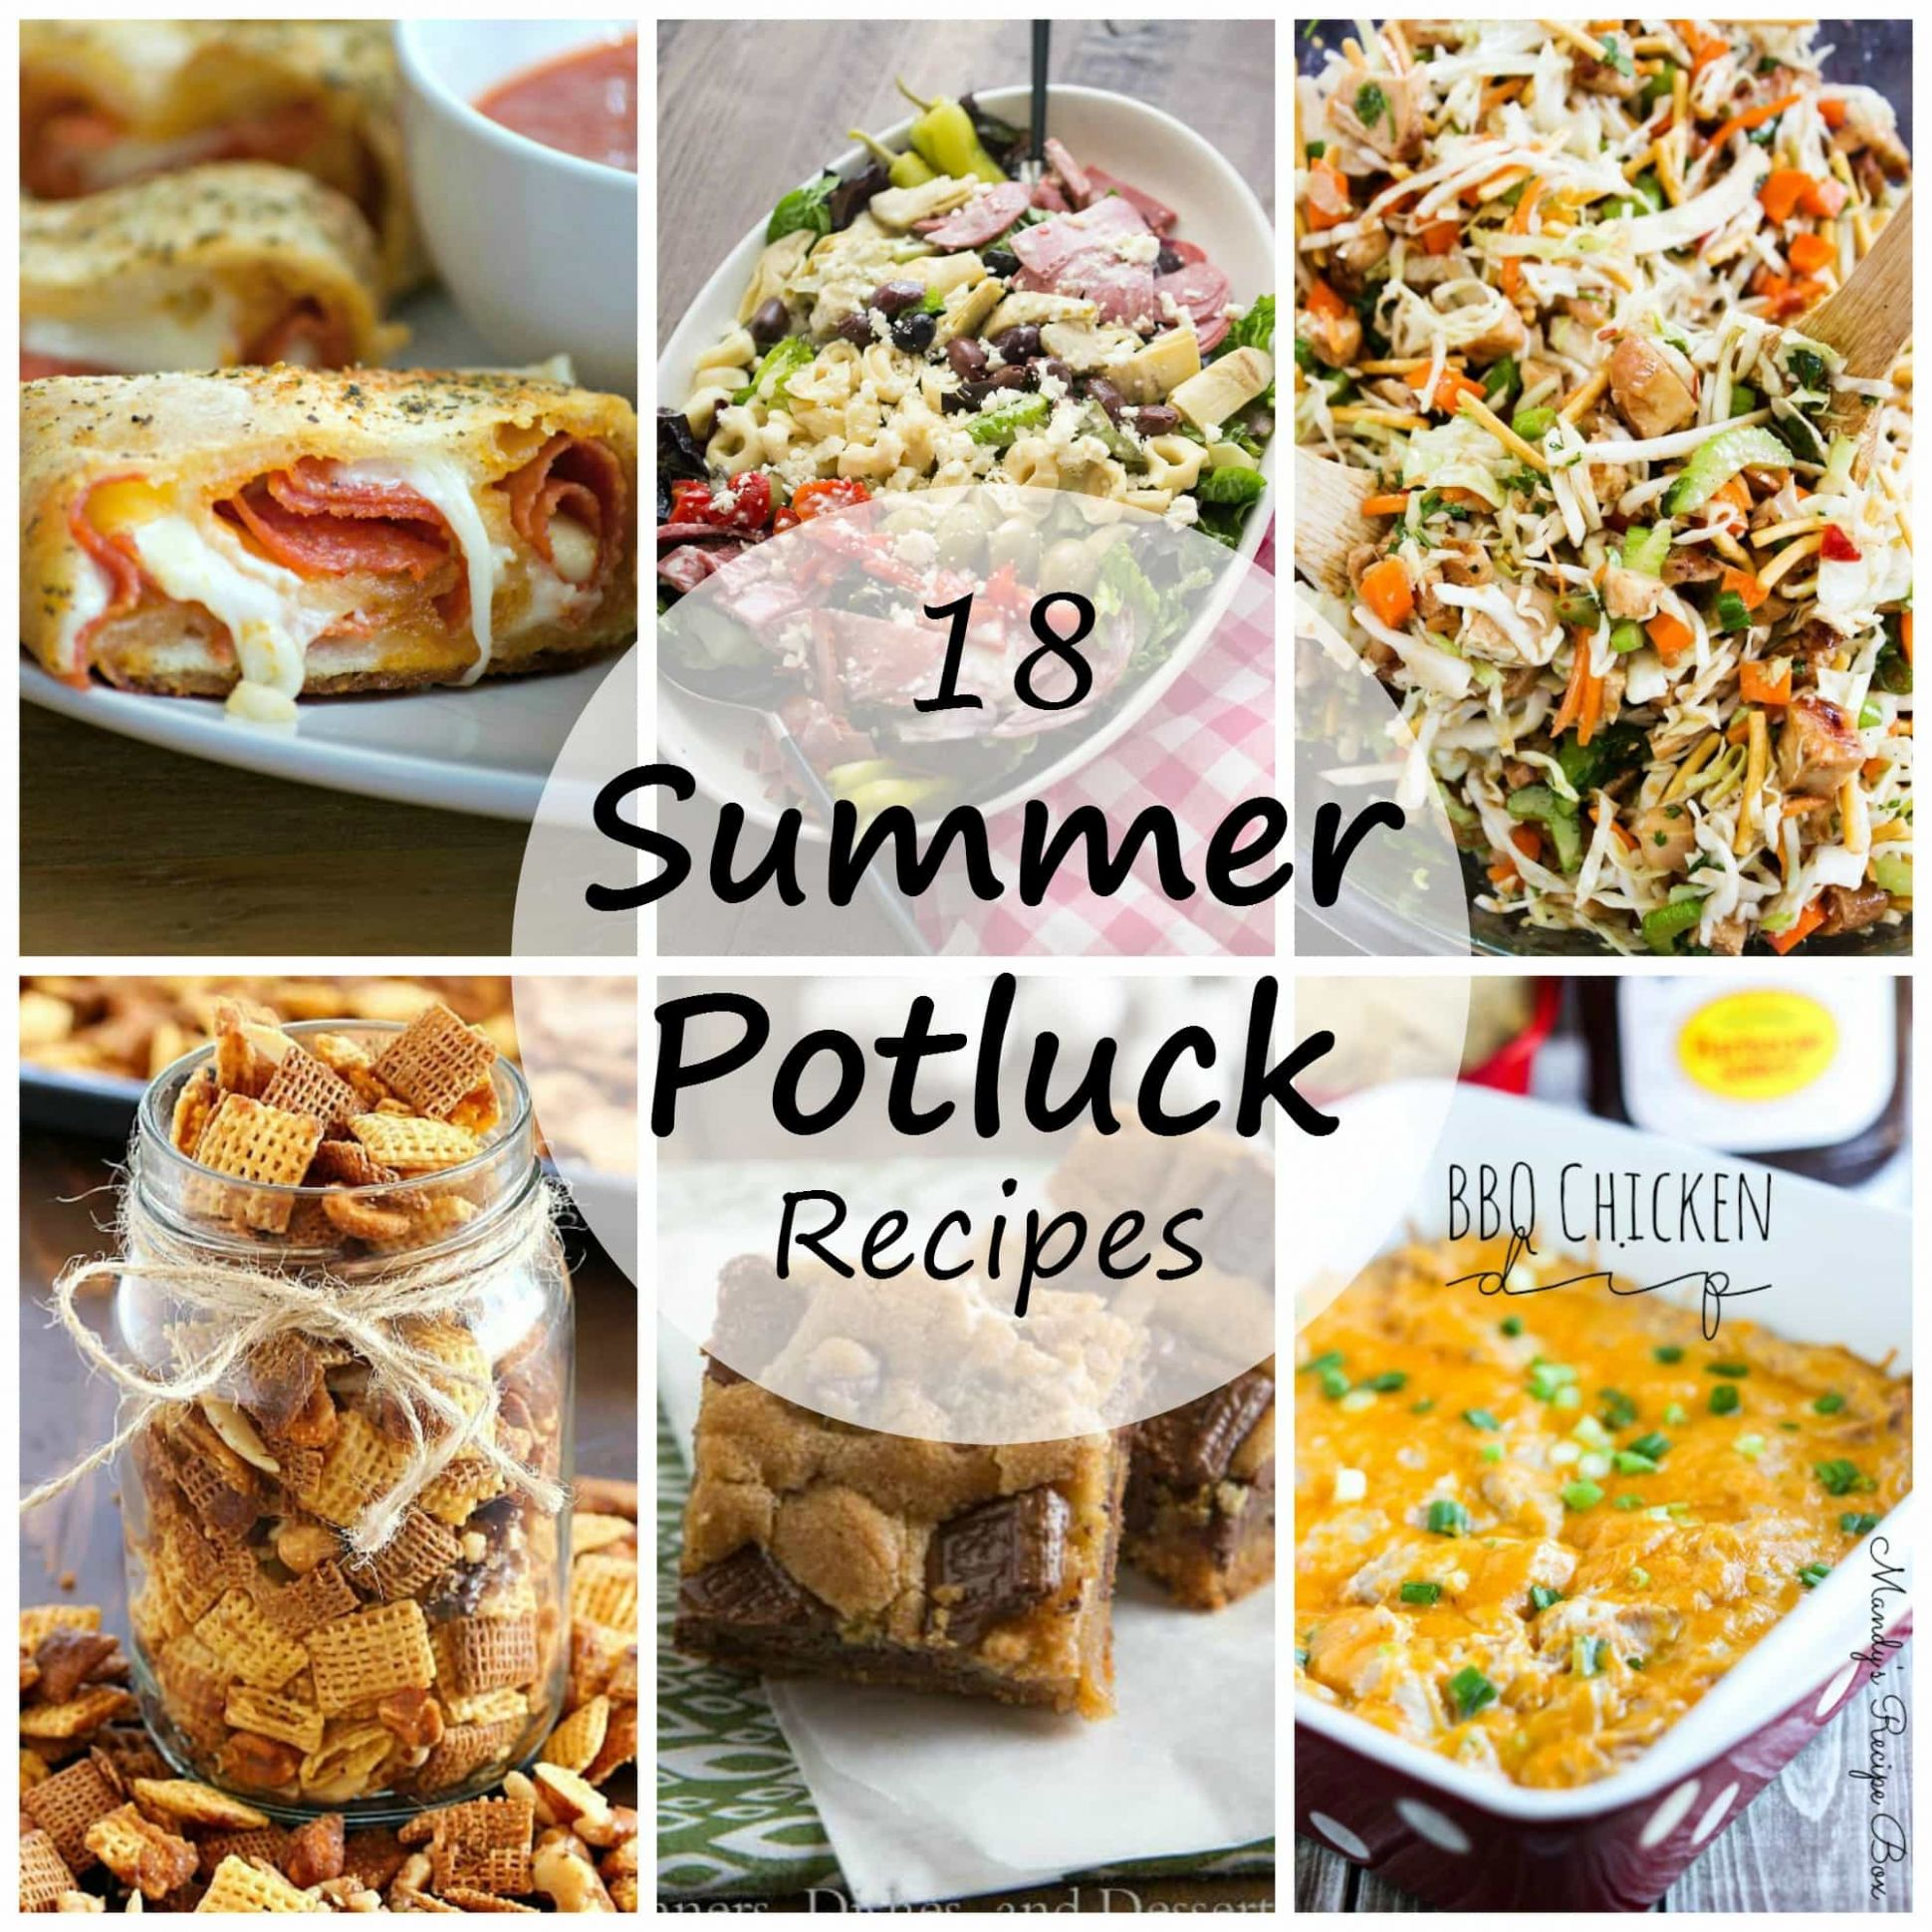 Summer Potluck Recipes - Dinners, Dishes, and Desserts - Recipes Summer Potluck